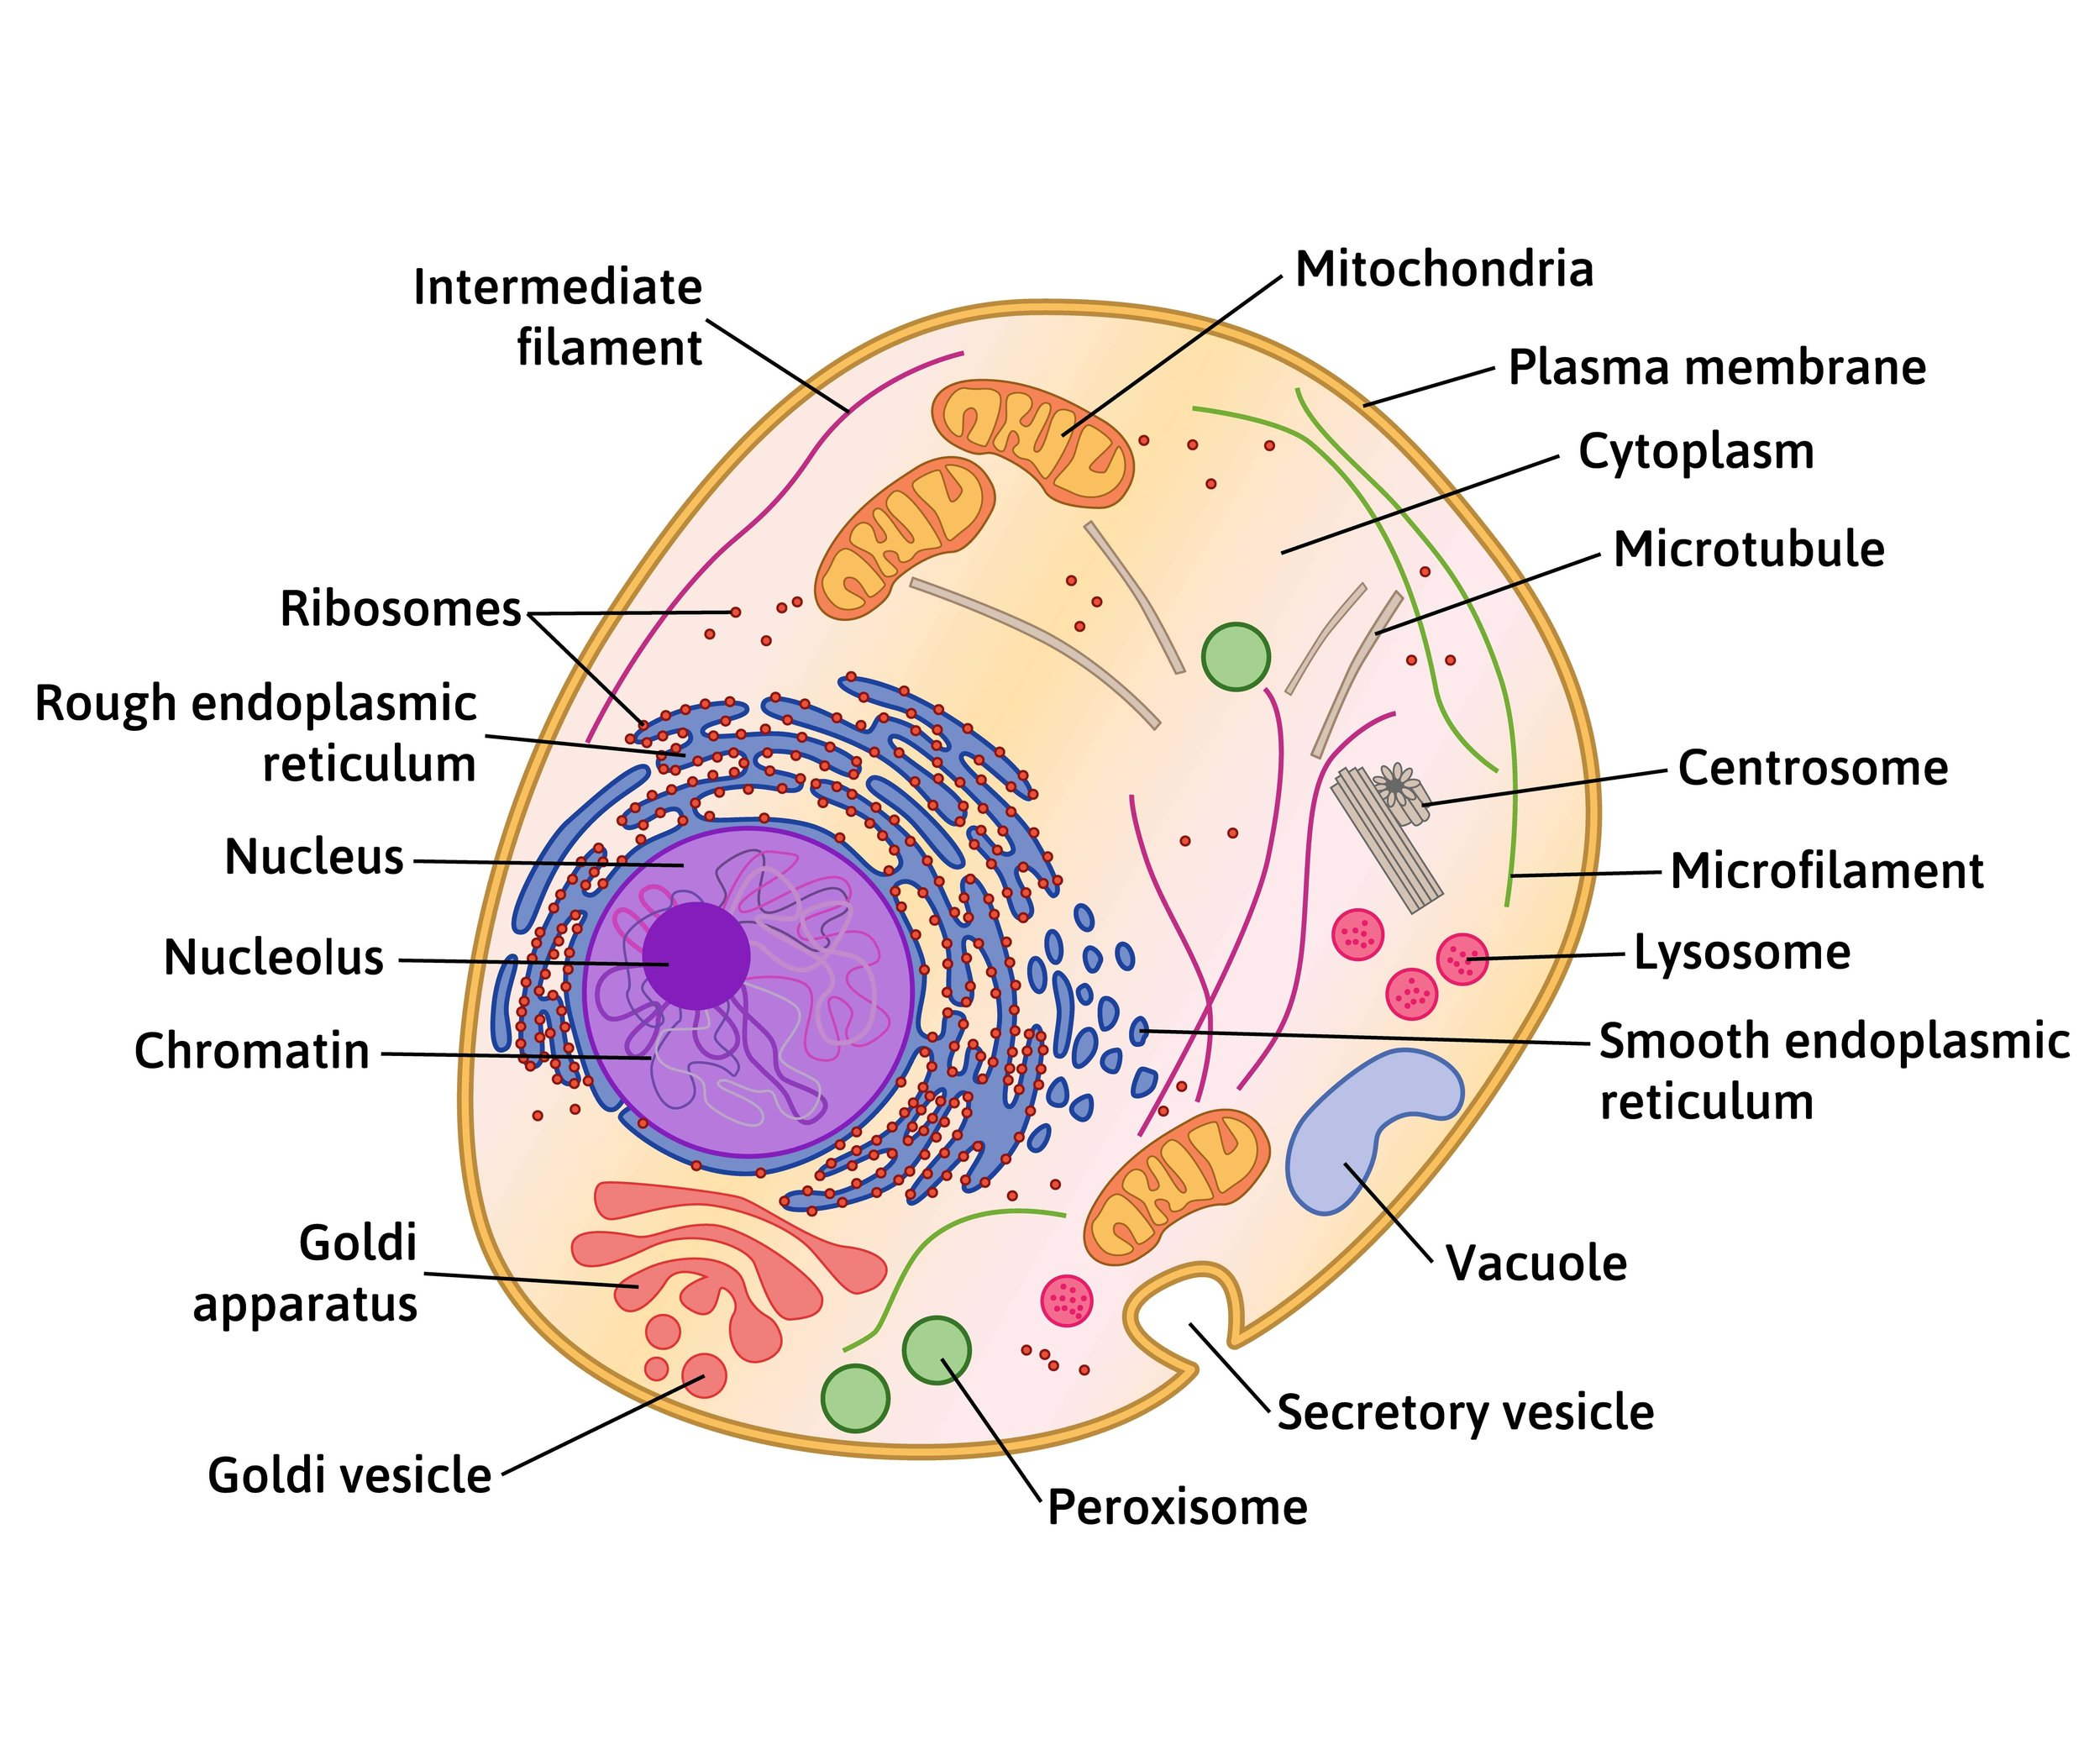 medium resolution of cross sectional diagram of a human cell